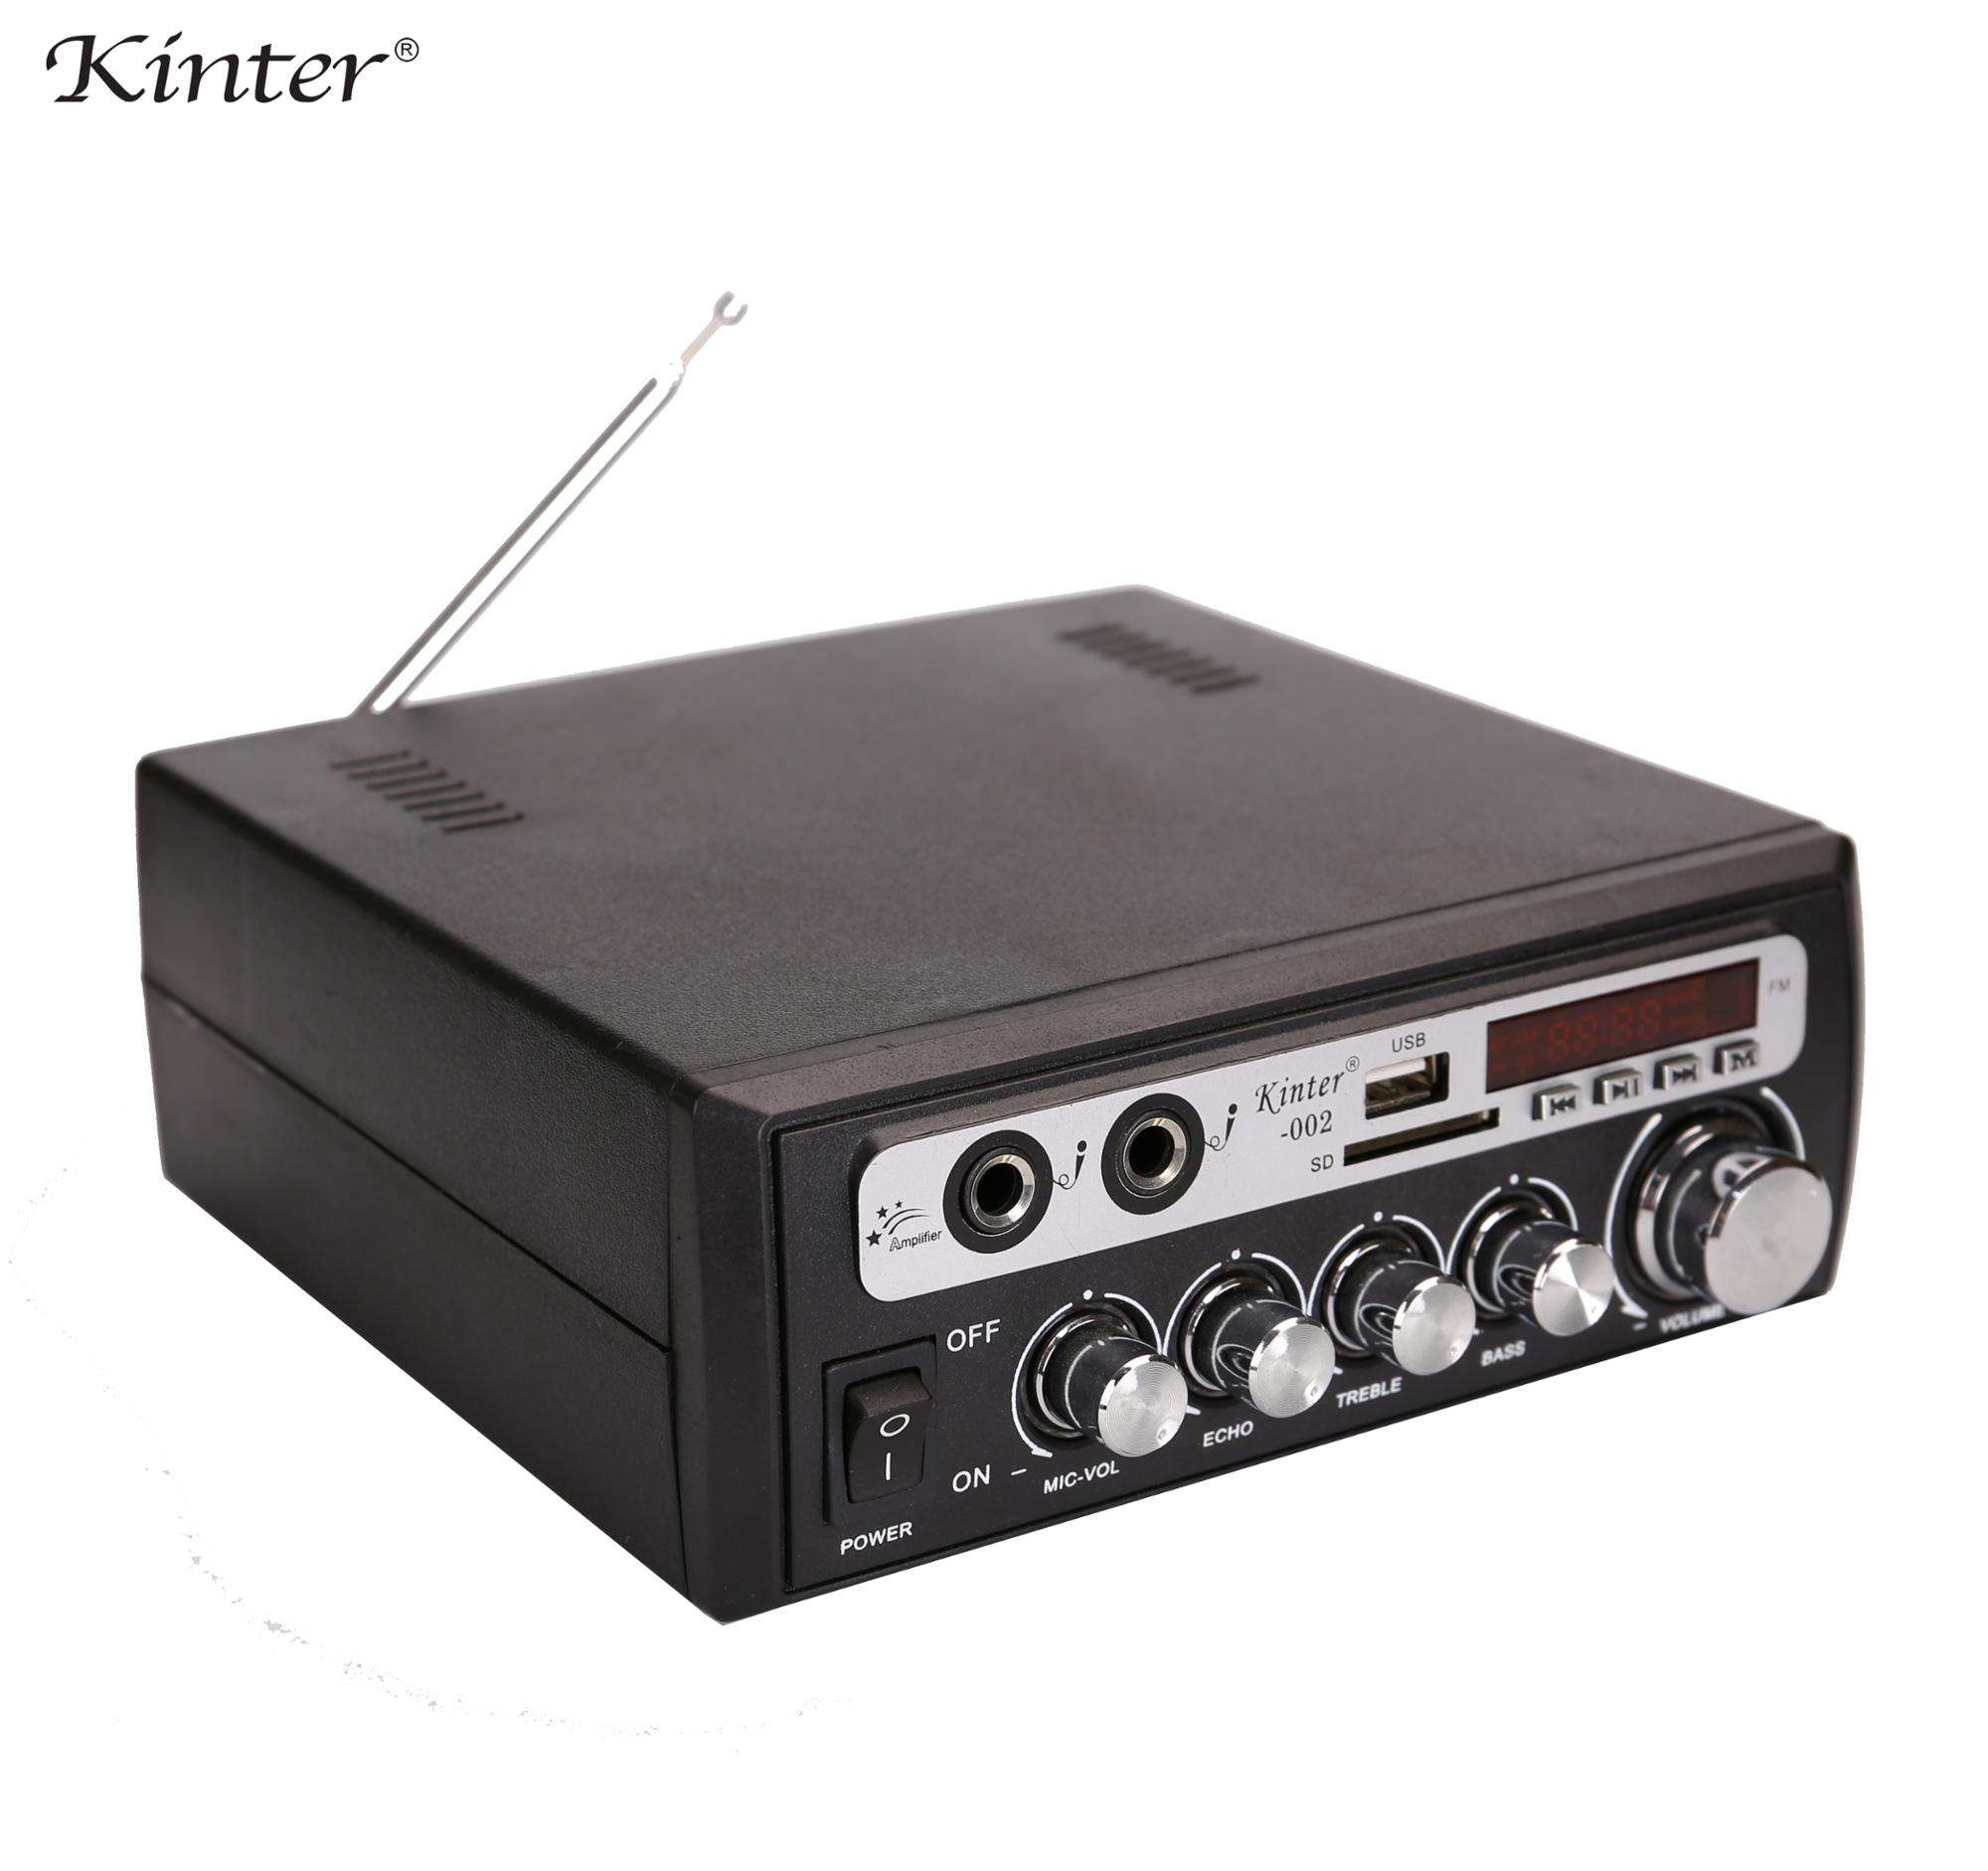 Kinter-002 2ch Power Audio Home Versterker Met Usb Sd Fm Mic